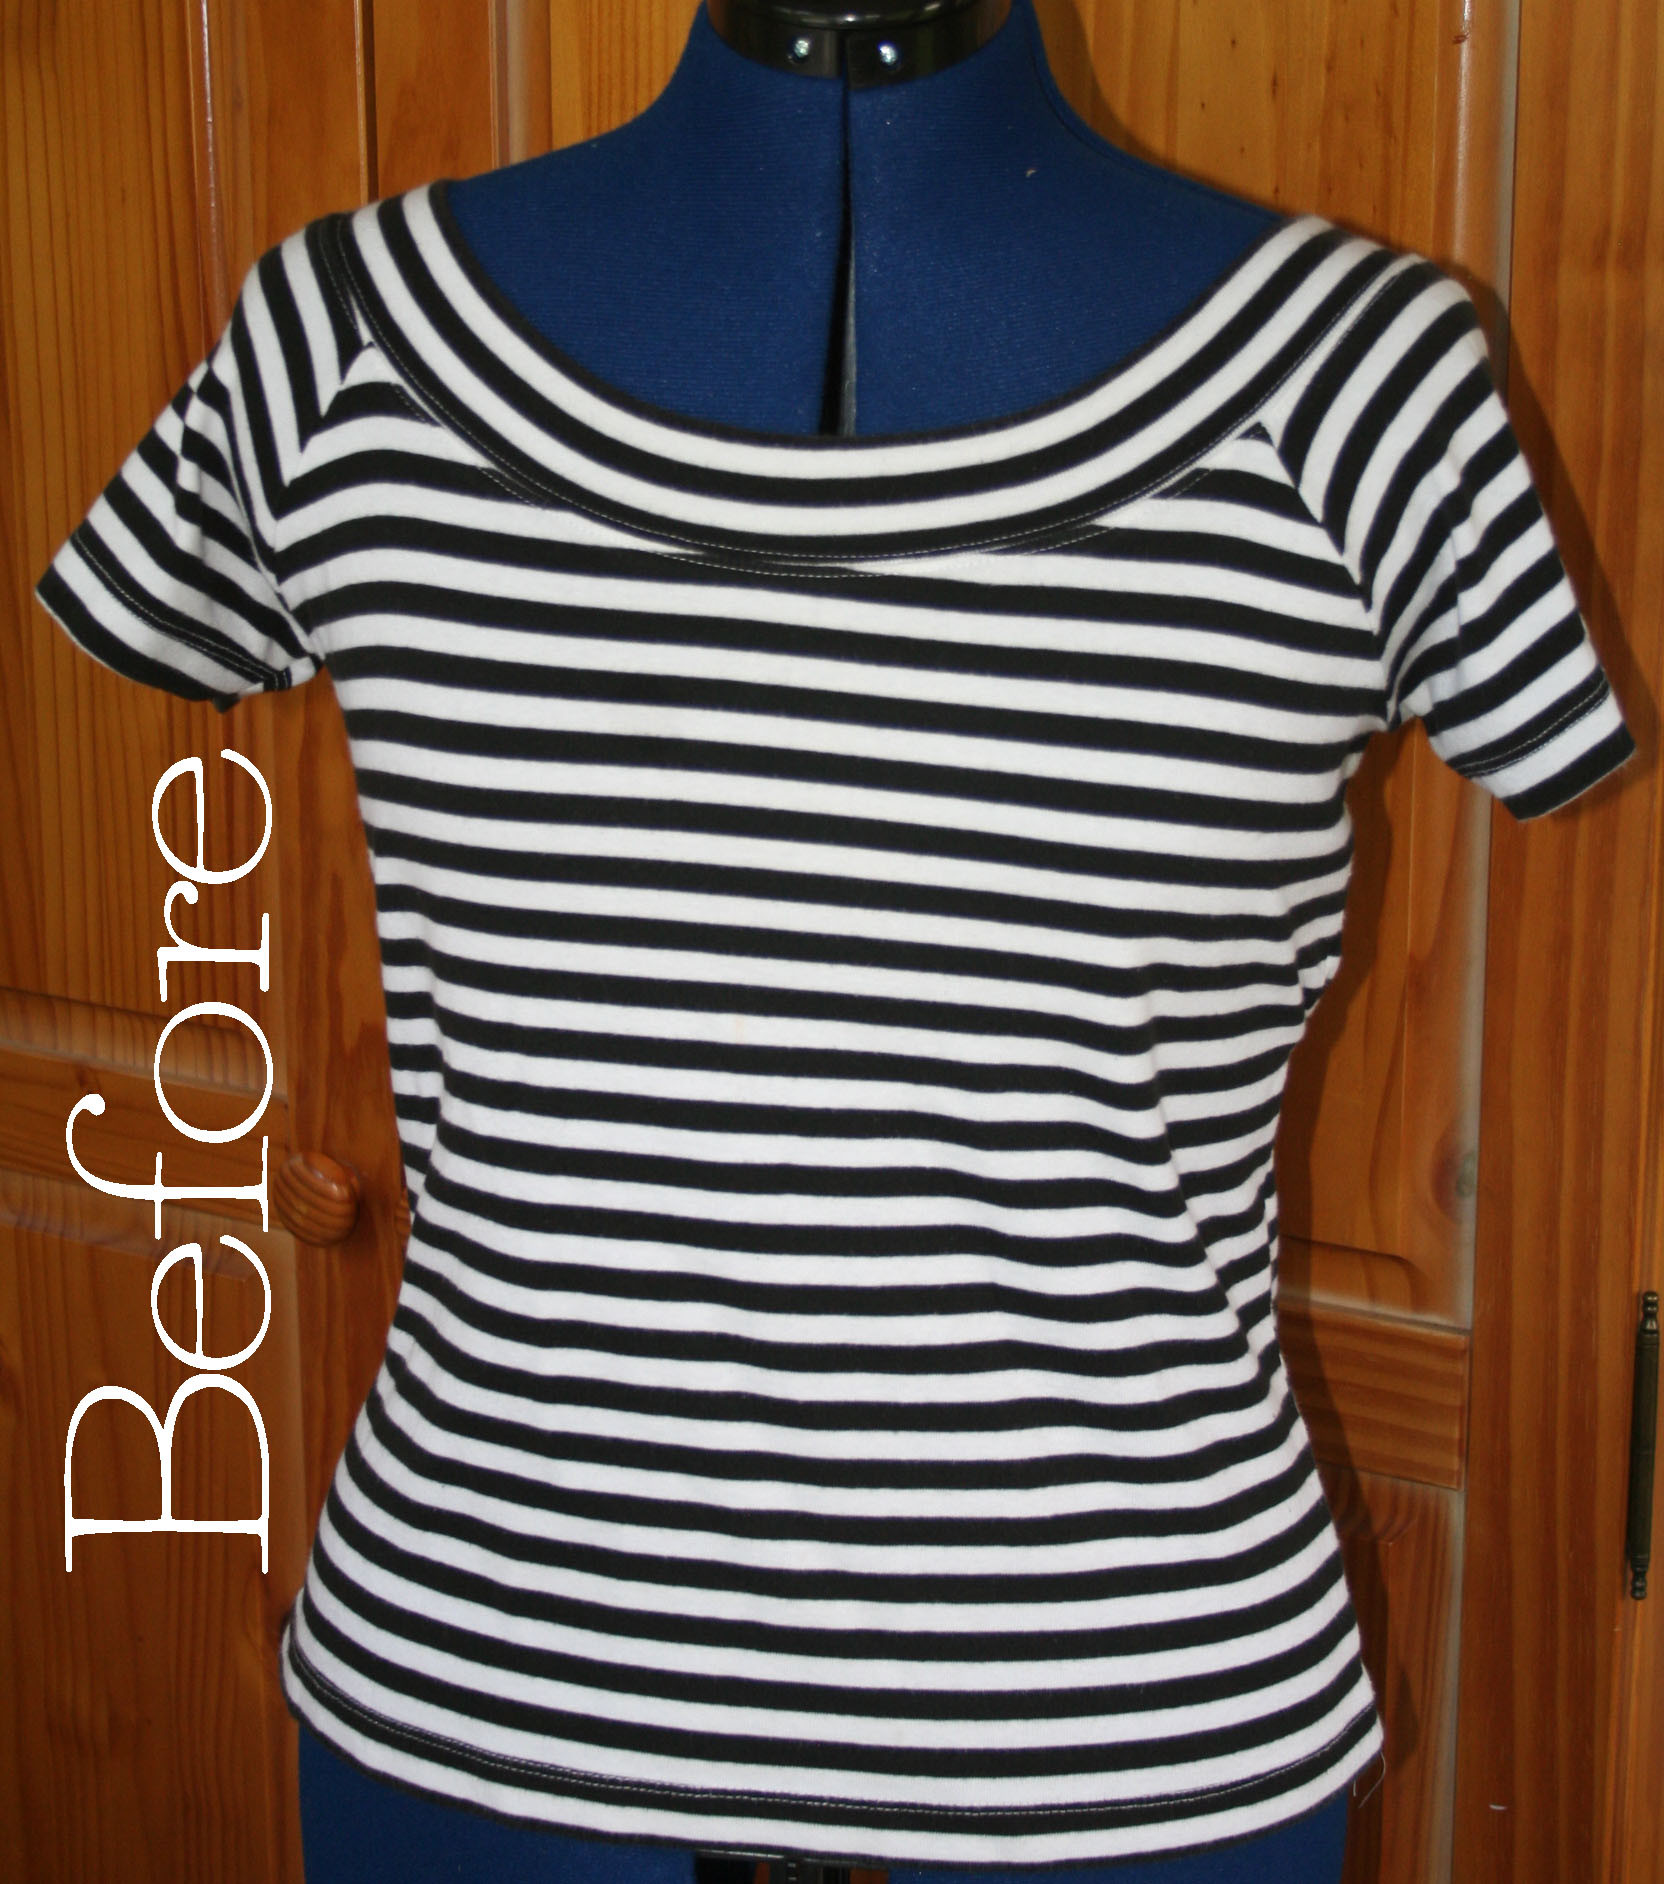 Best ideas about DIY T Shirt . Save or Pin DIY T Shirt Dress Now.